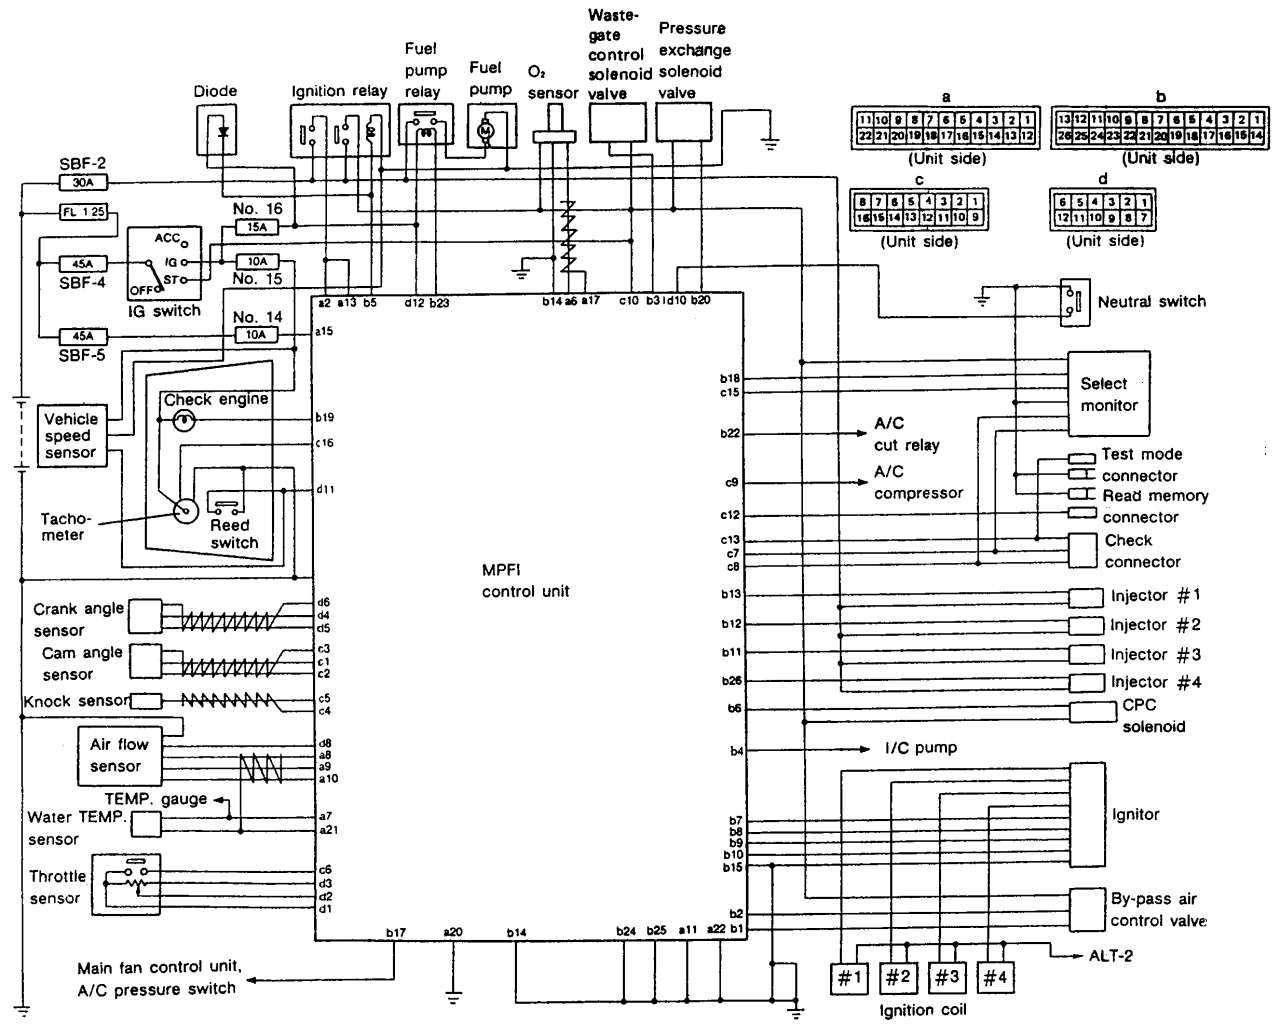 2008 jeep liberty egr wiring diagram - wiring diagrams site  newfleshcreativelab.it